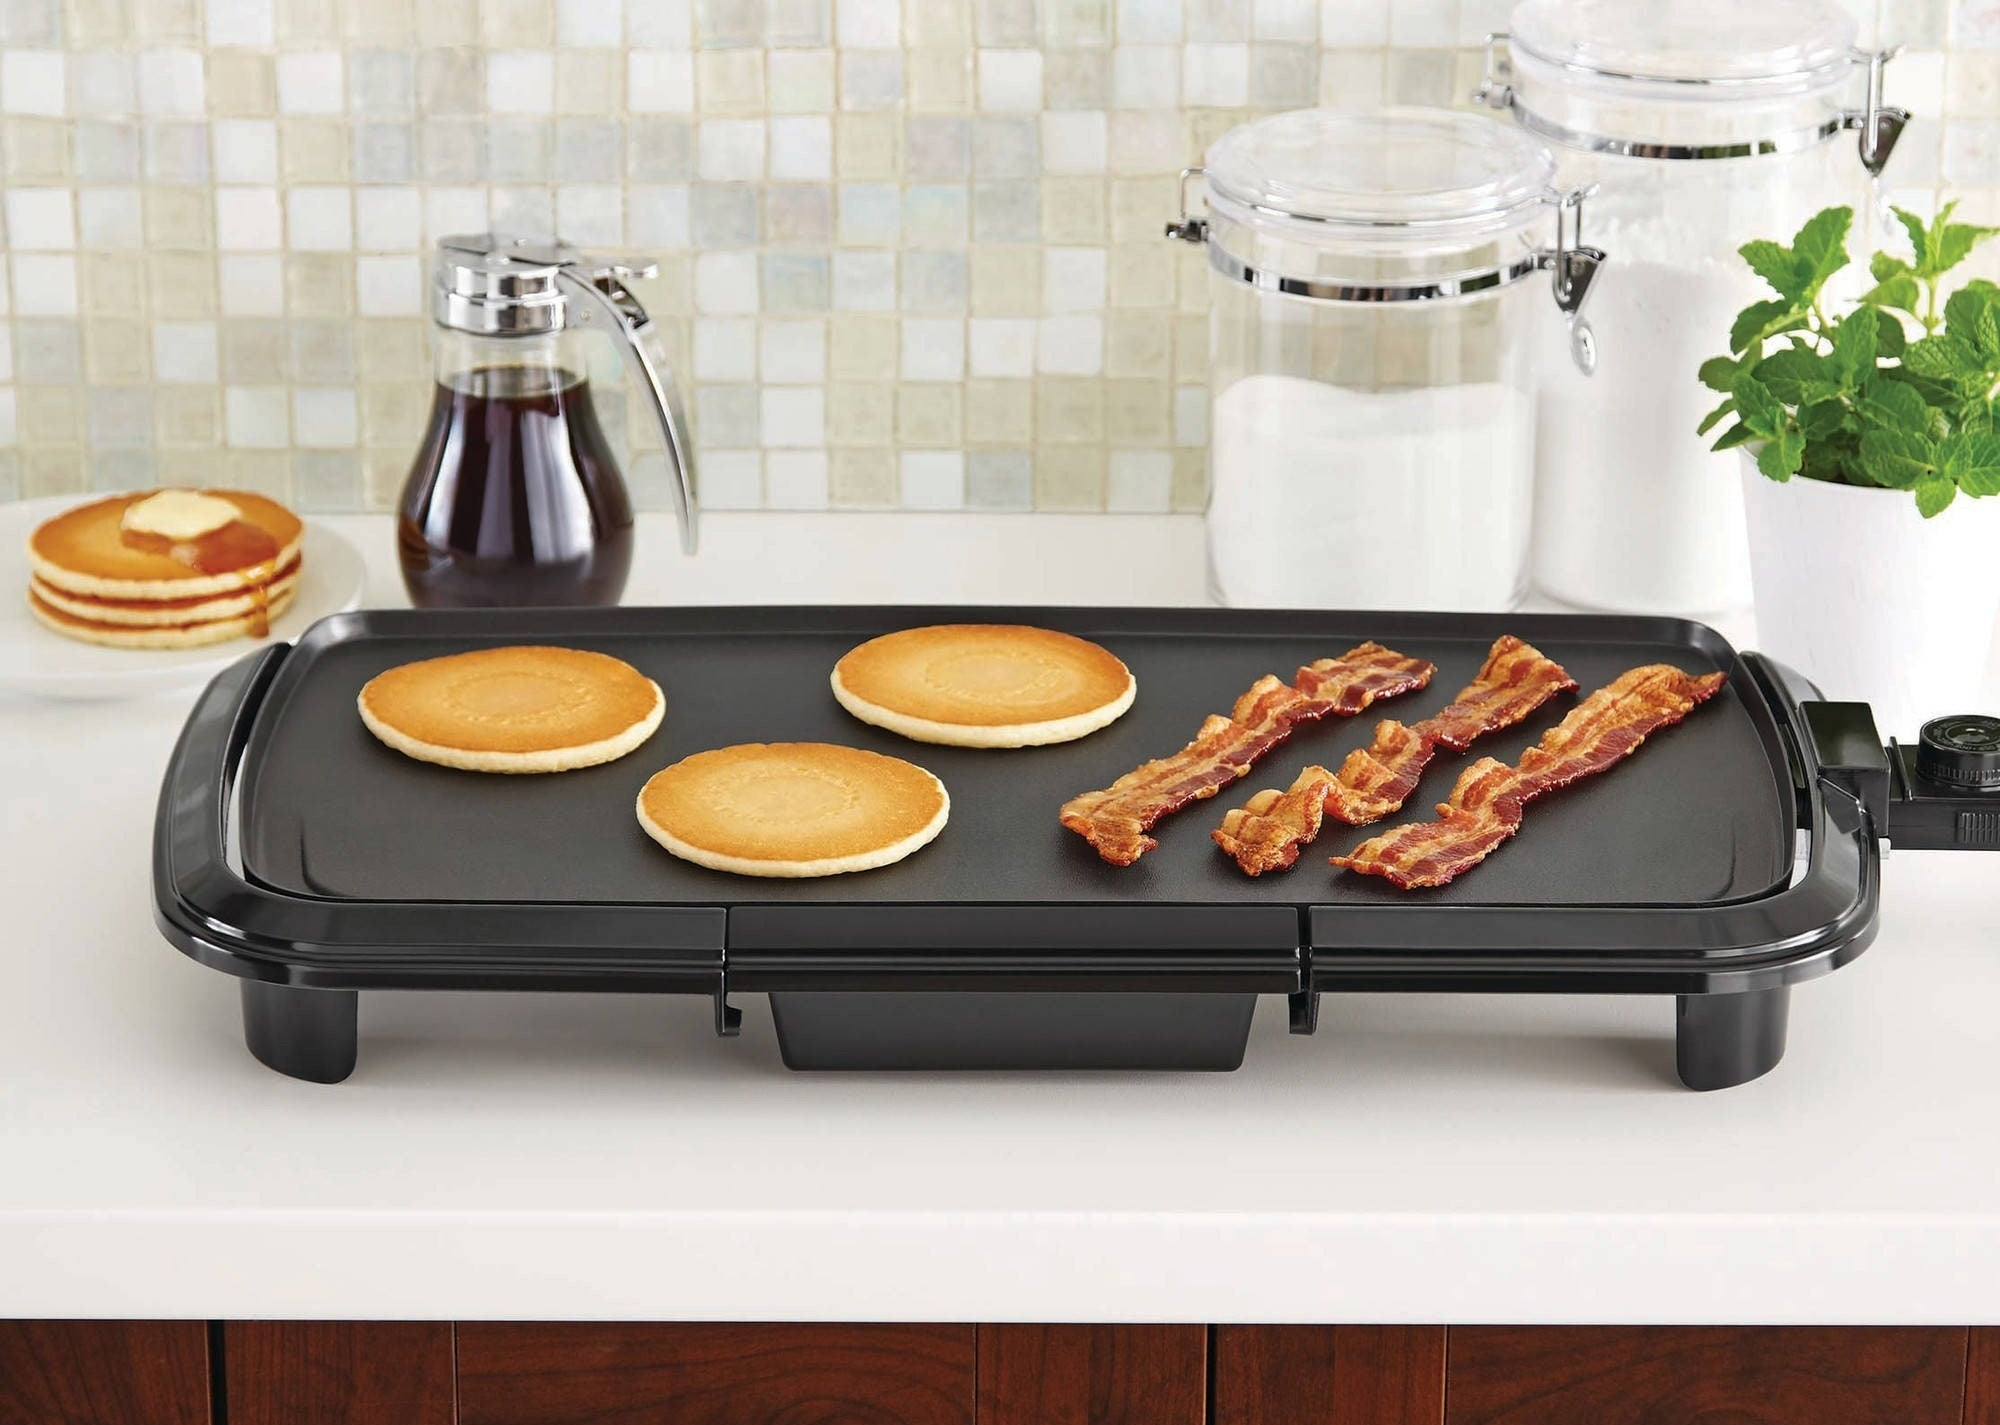 the griddle in the color black with pancakes and bacon on top of it